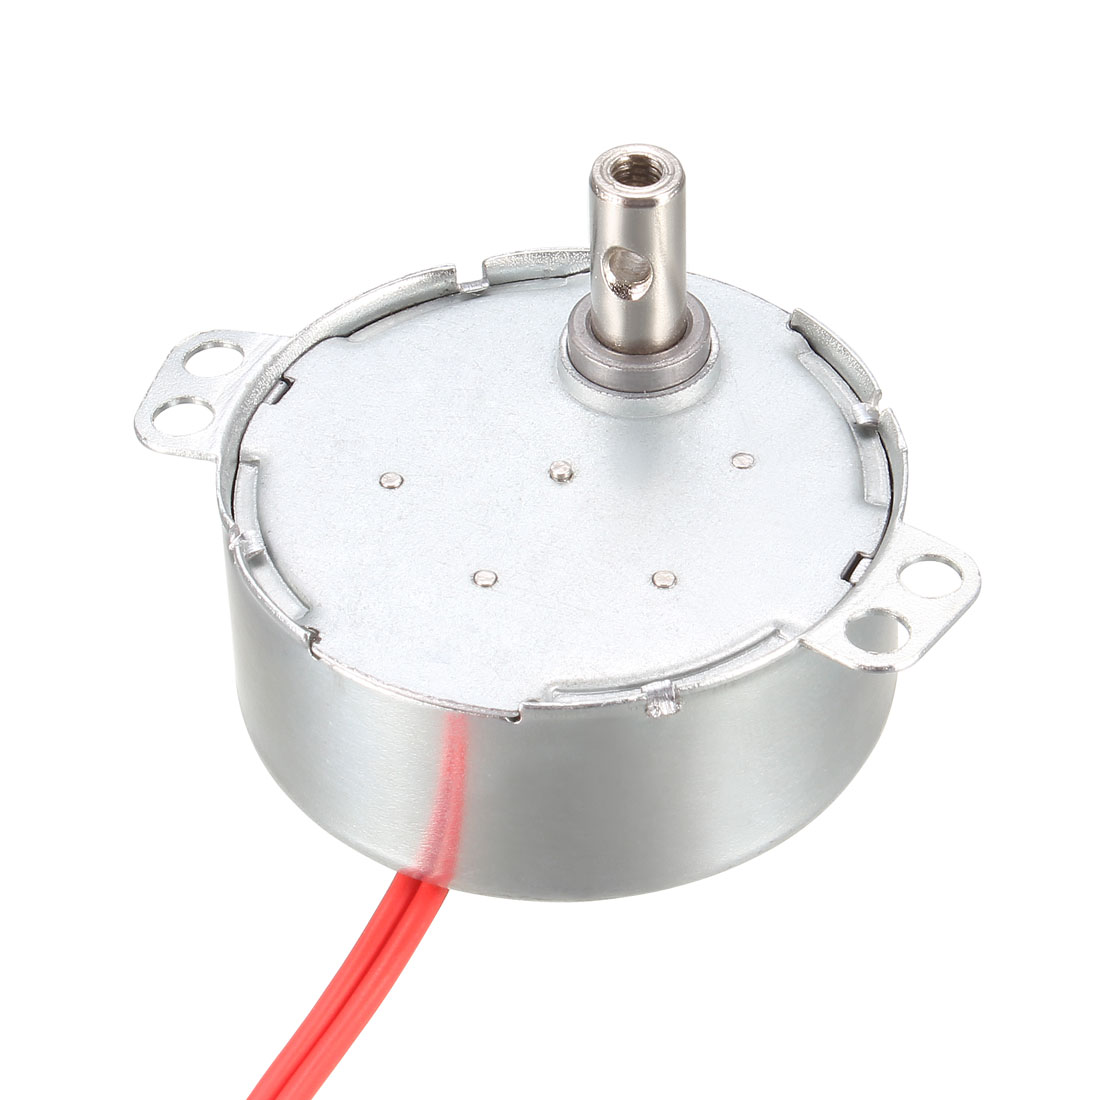 Electric Synchronous Motor - Turntable Motor AC 24V 50-60Hz CCW/CW 4W 0.8-1RPM